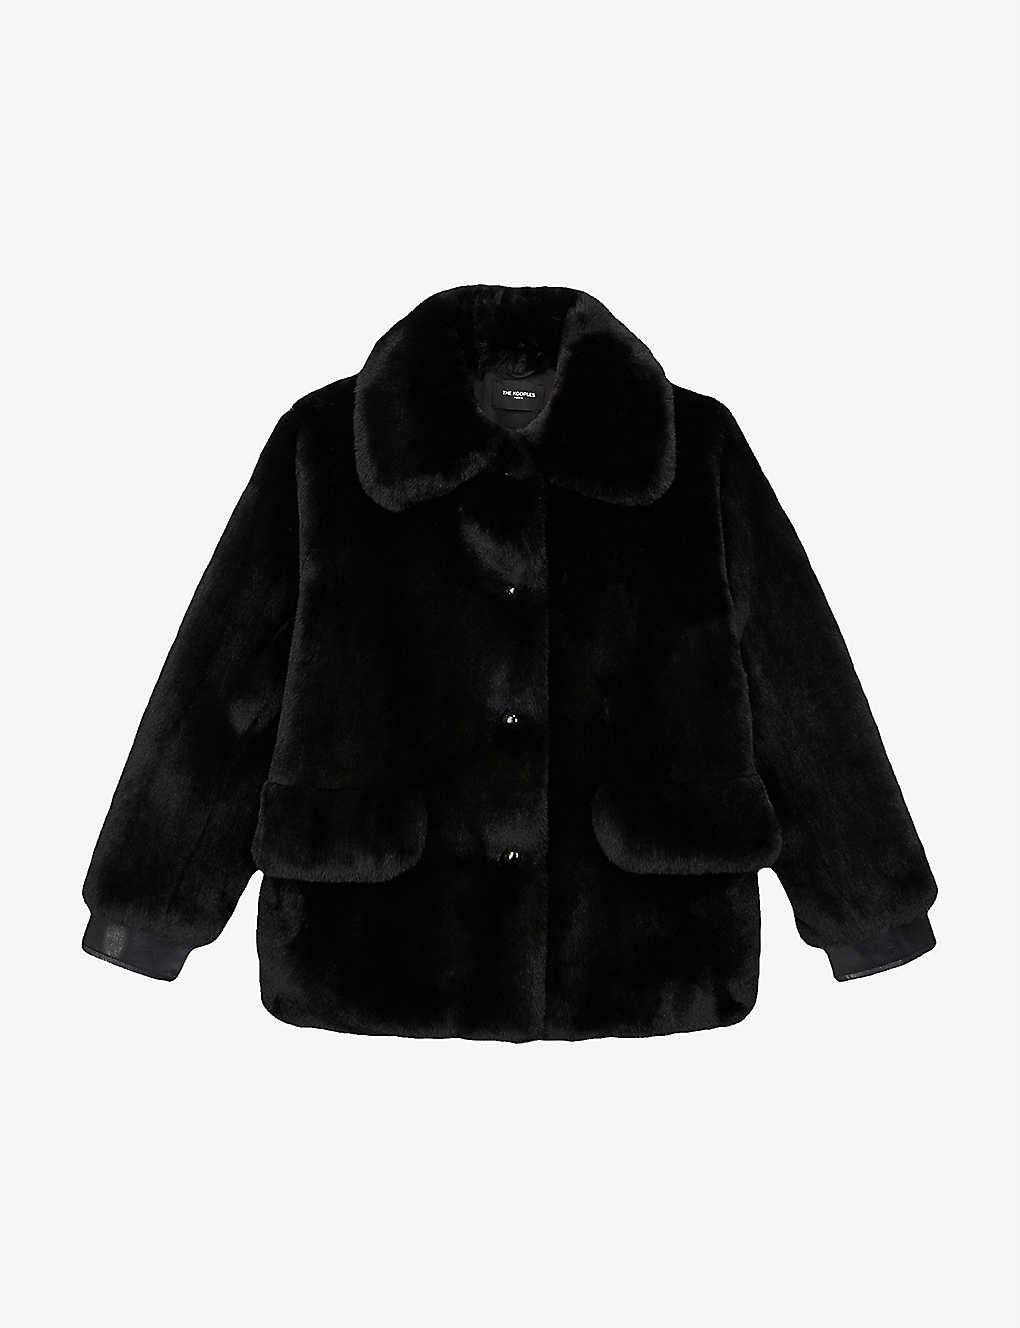 THE KOOPLES: Leather and faux-fur cropped jacket